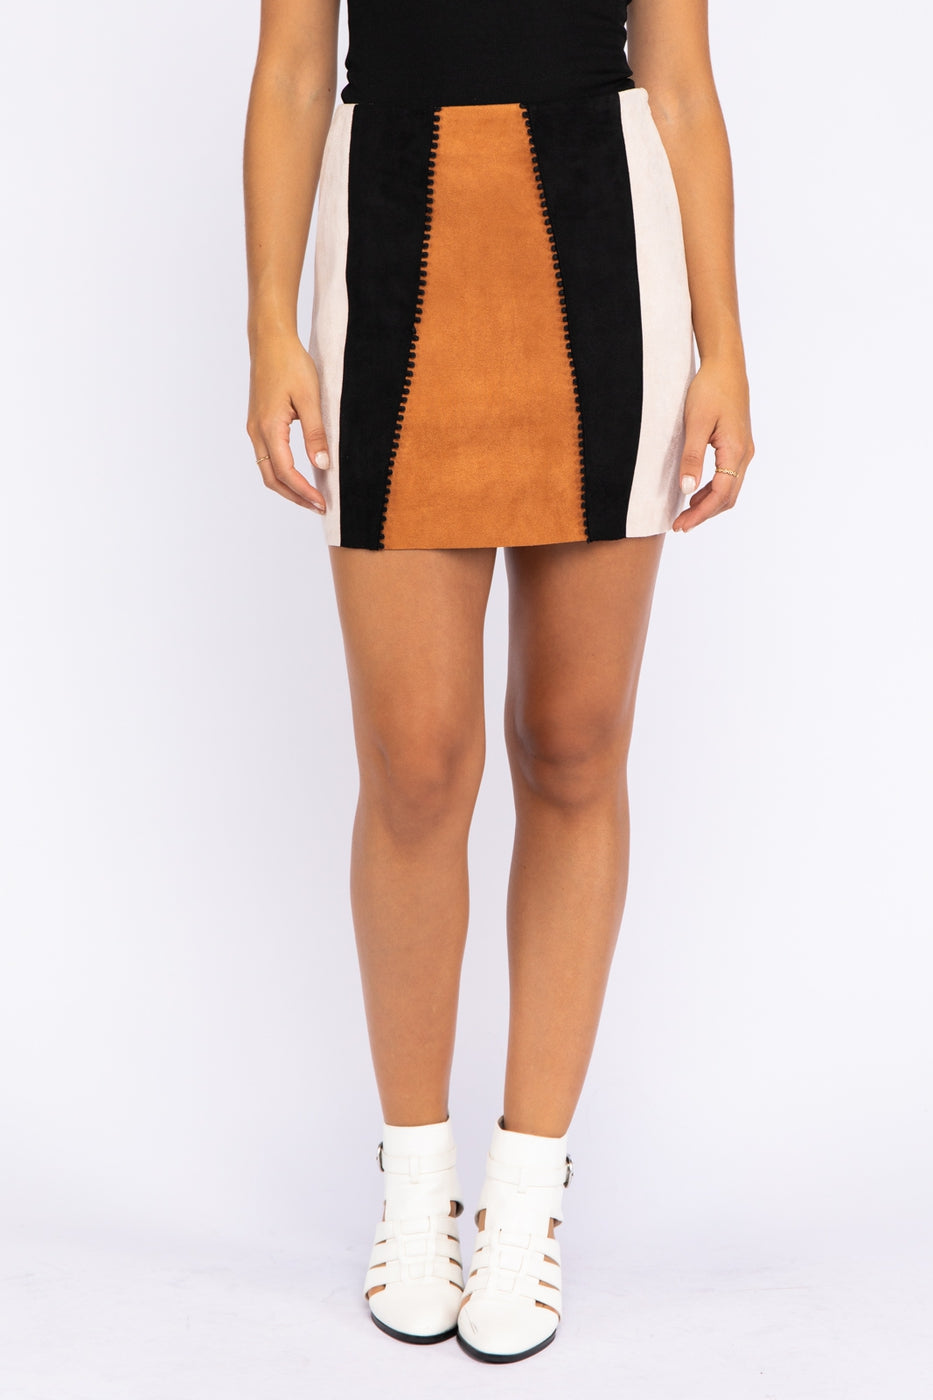 Suede Colorblock Mini Skirt In Brown Multi Siin Bees